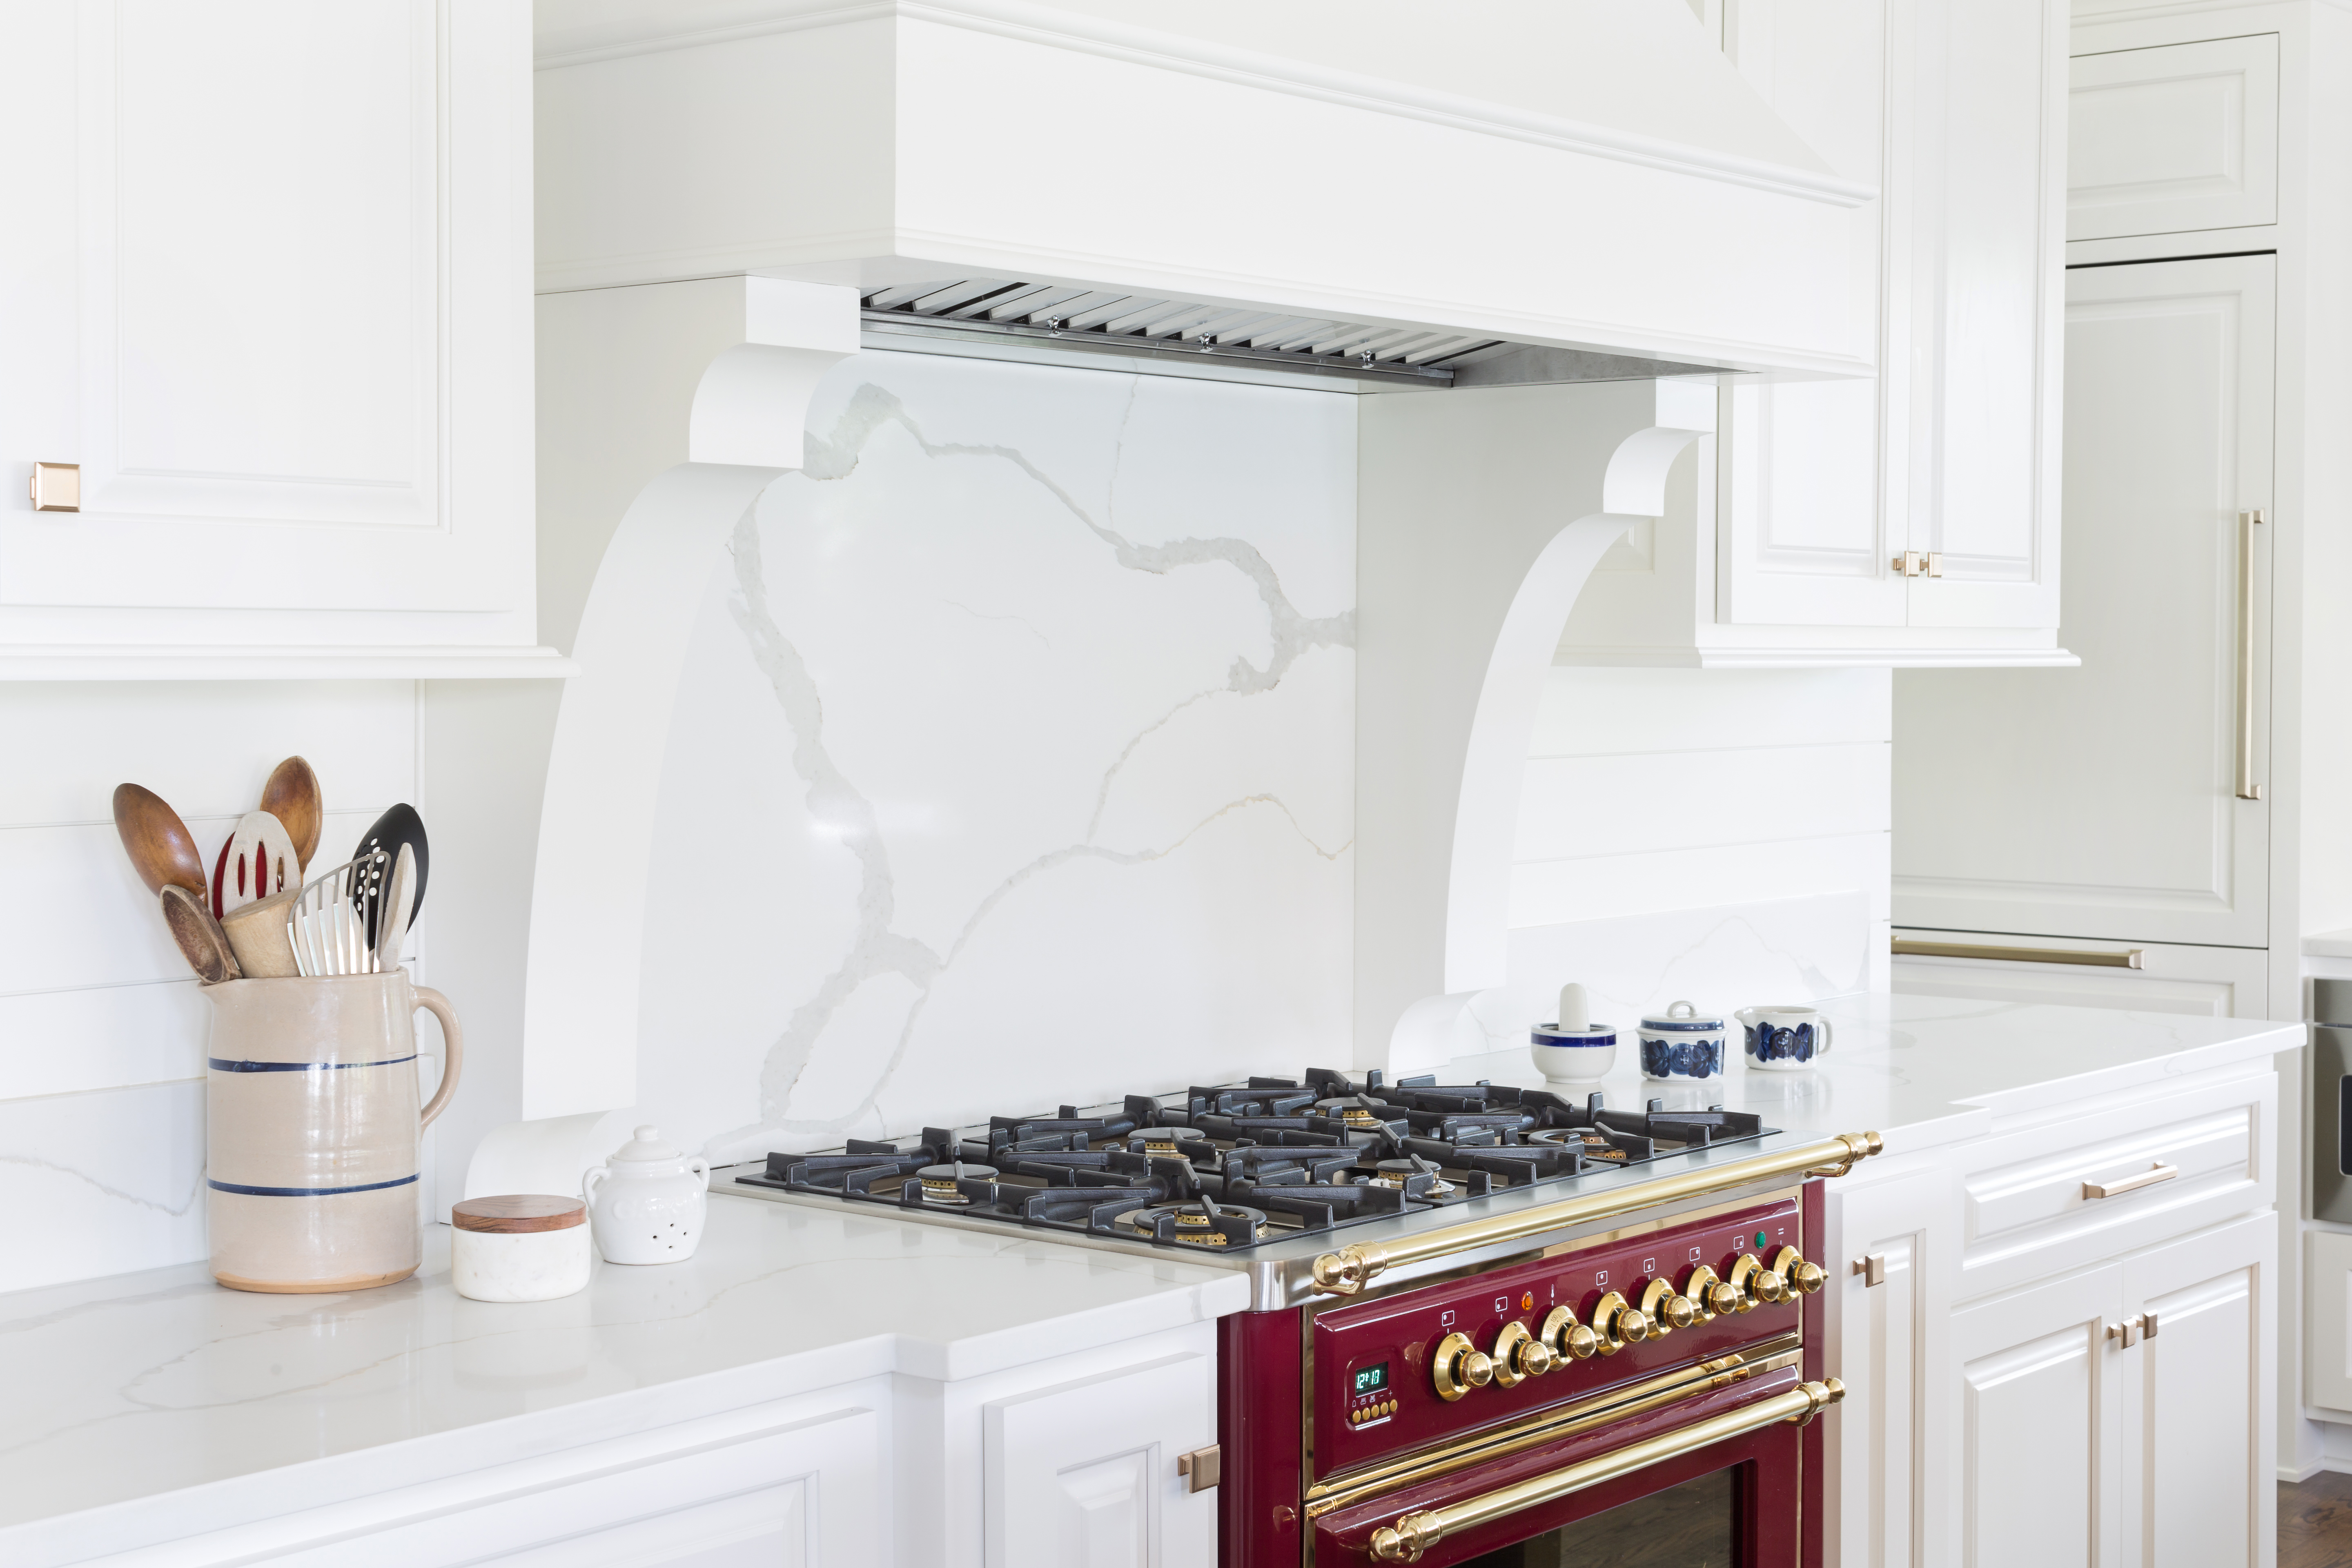 ilve range and quartz backsplash